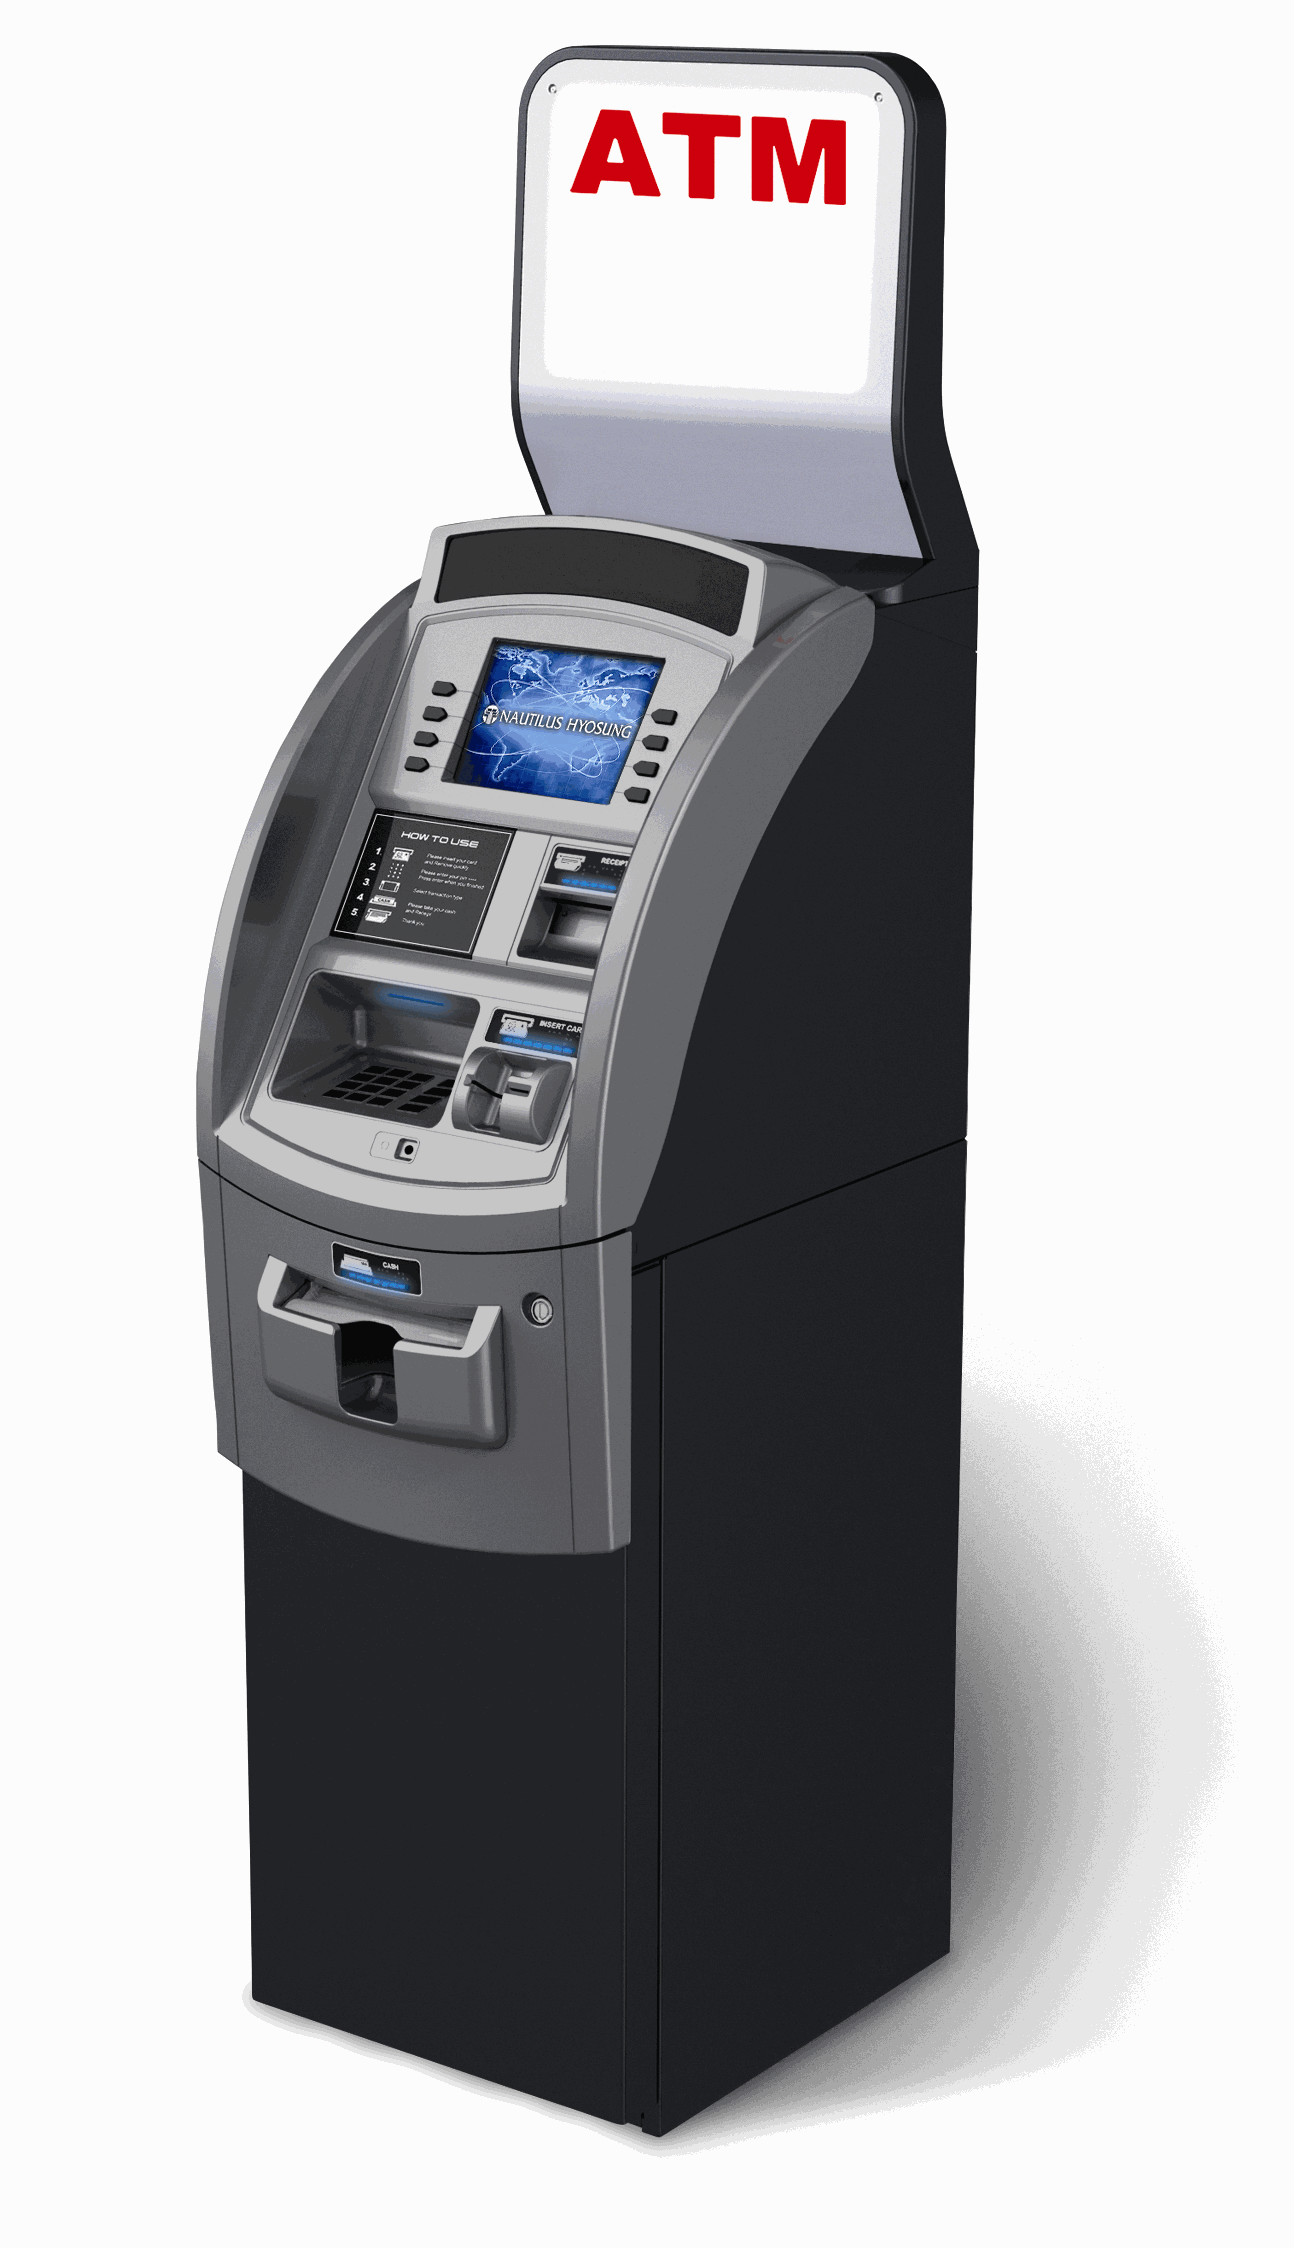 CalATM ATM Sales and Service